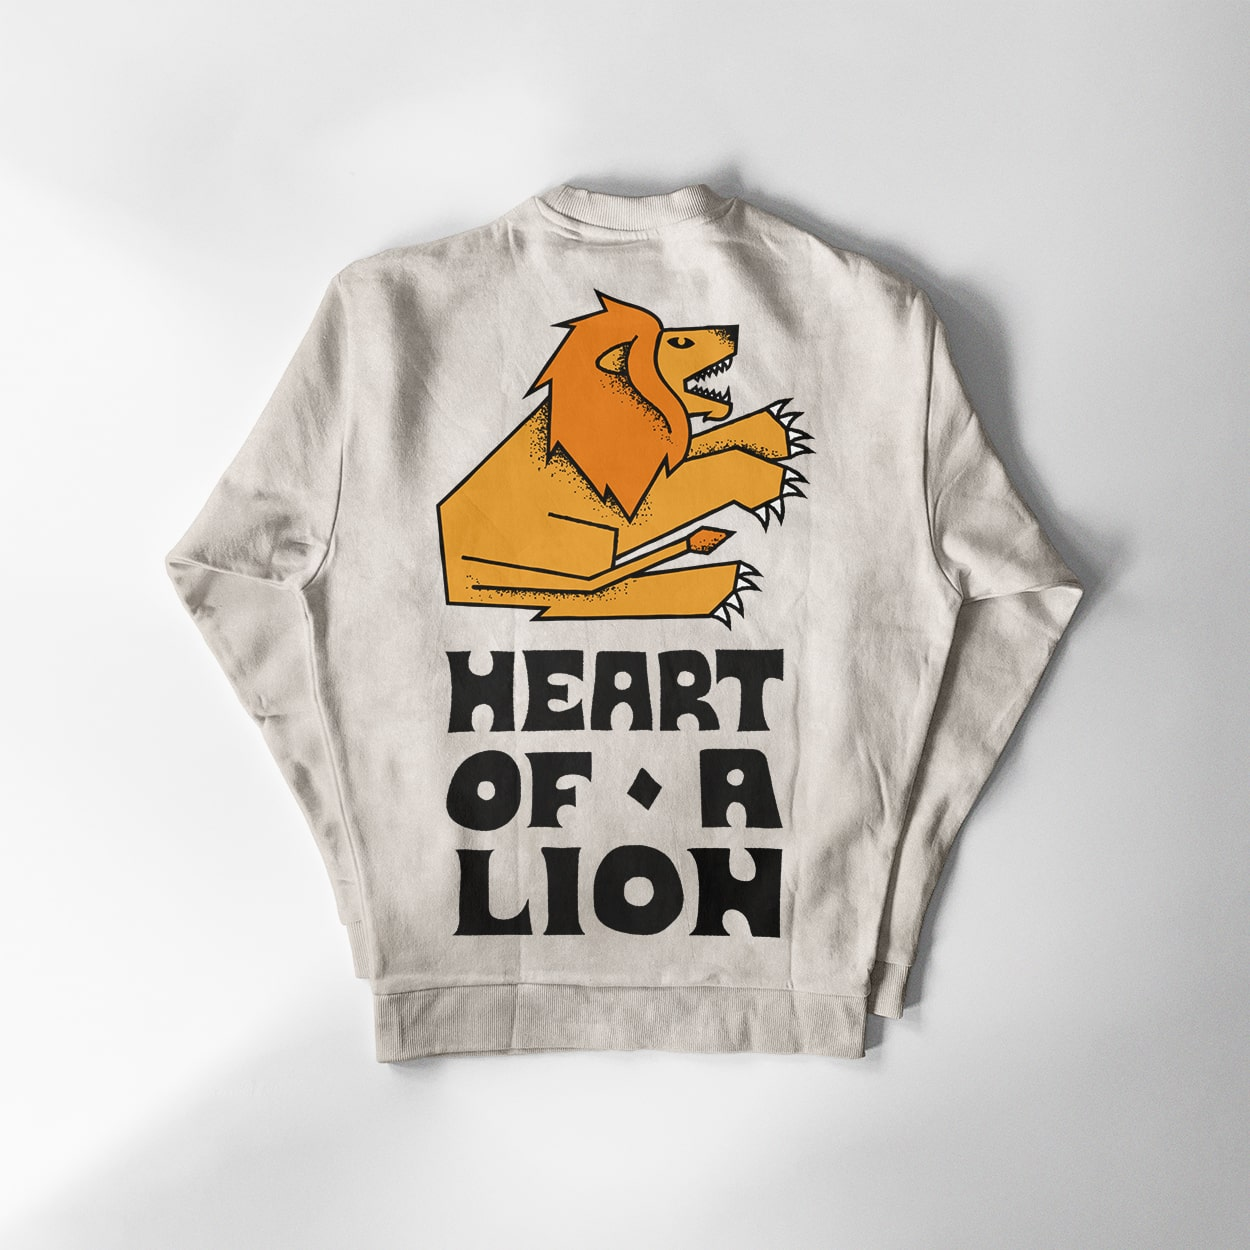 A sweatshirt with the words 'Heart of a Lion' written on the back and an illustration of a lion